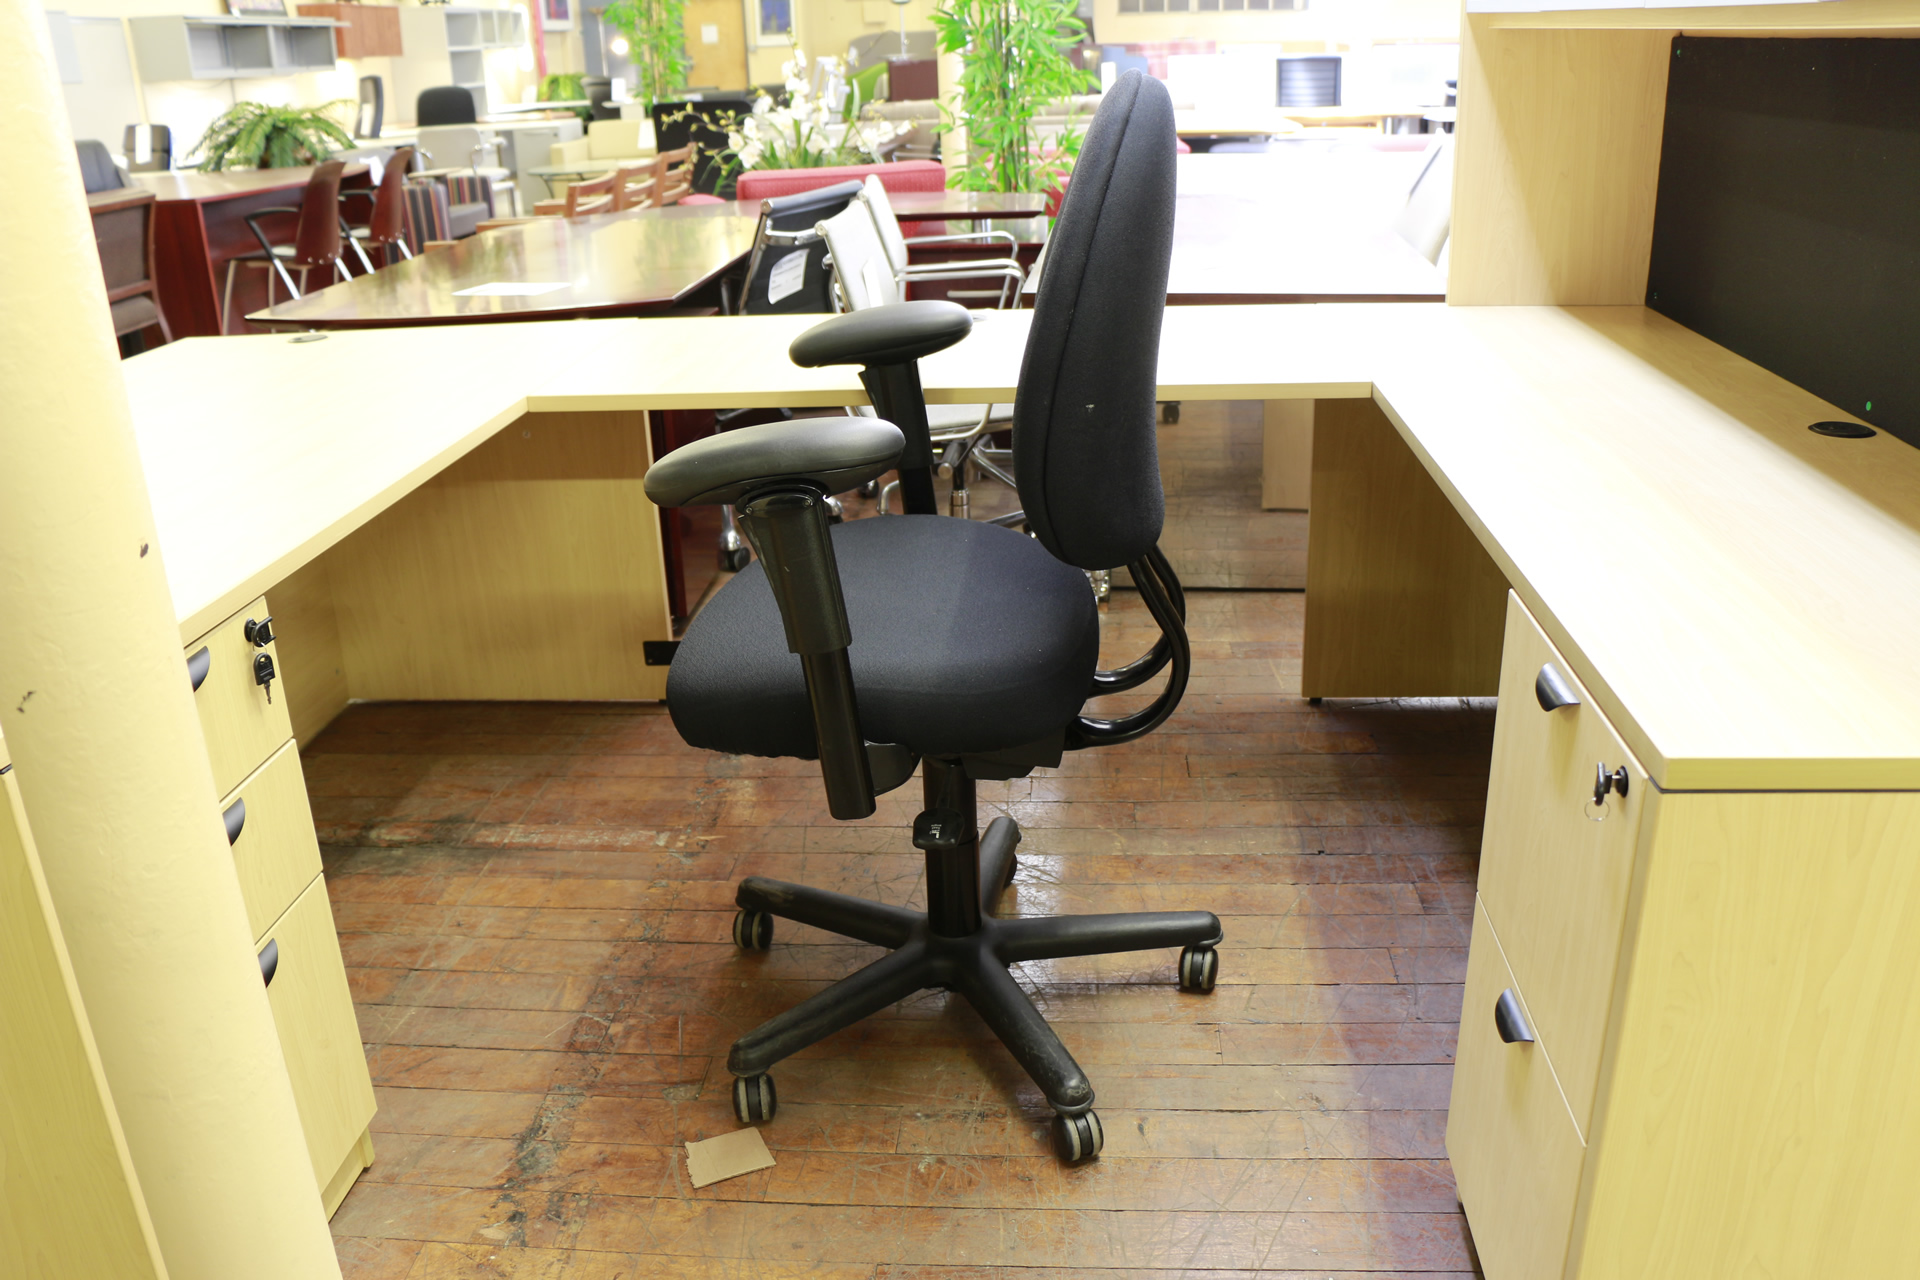 peartreeofficefurniture_peartreeofficefurniture_peartreeofficefurniture_2015-05-15_21-01-35.jpg